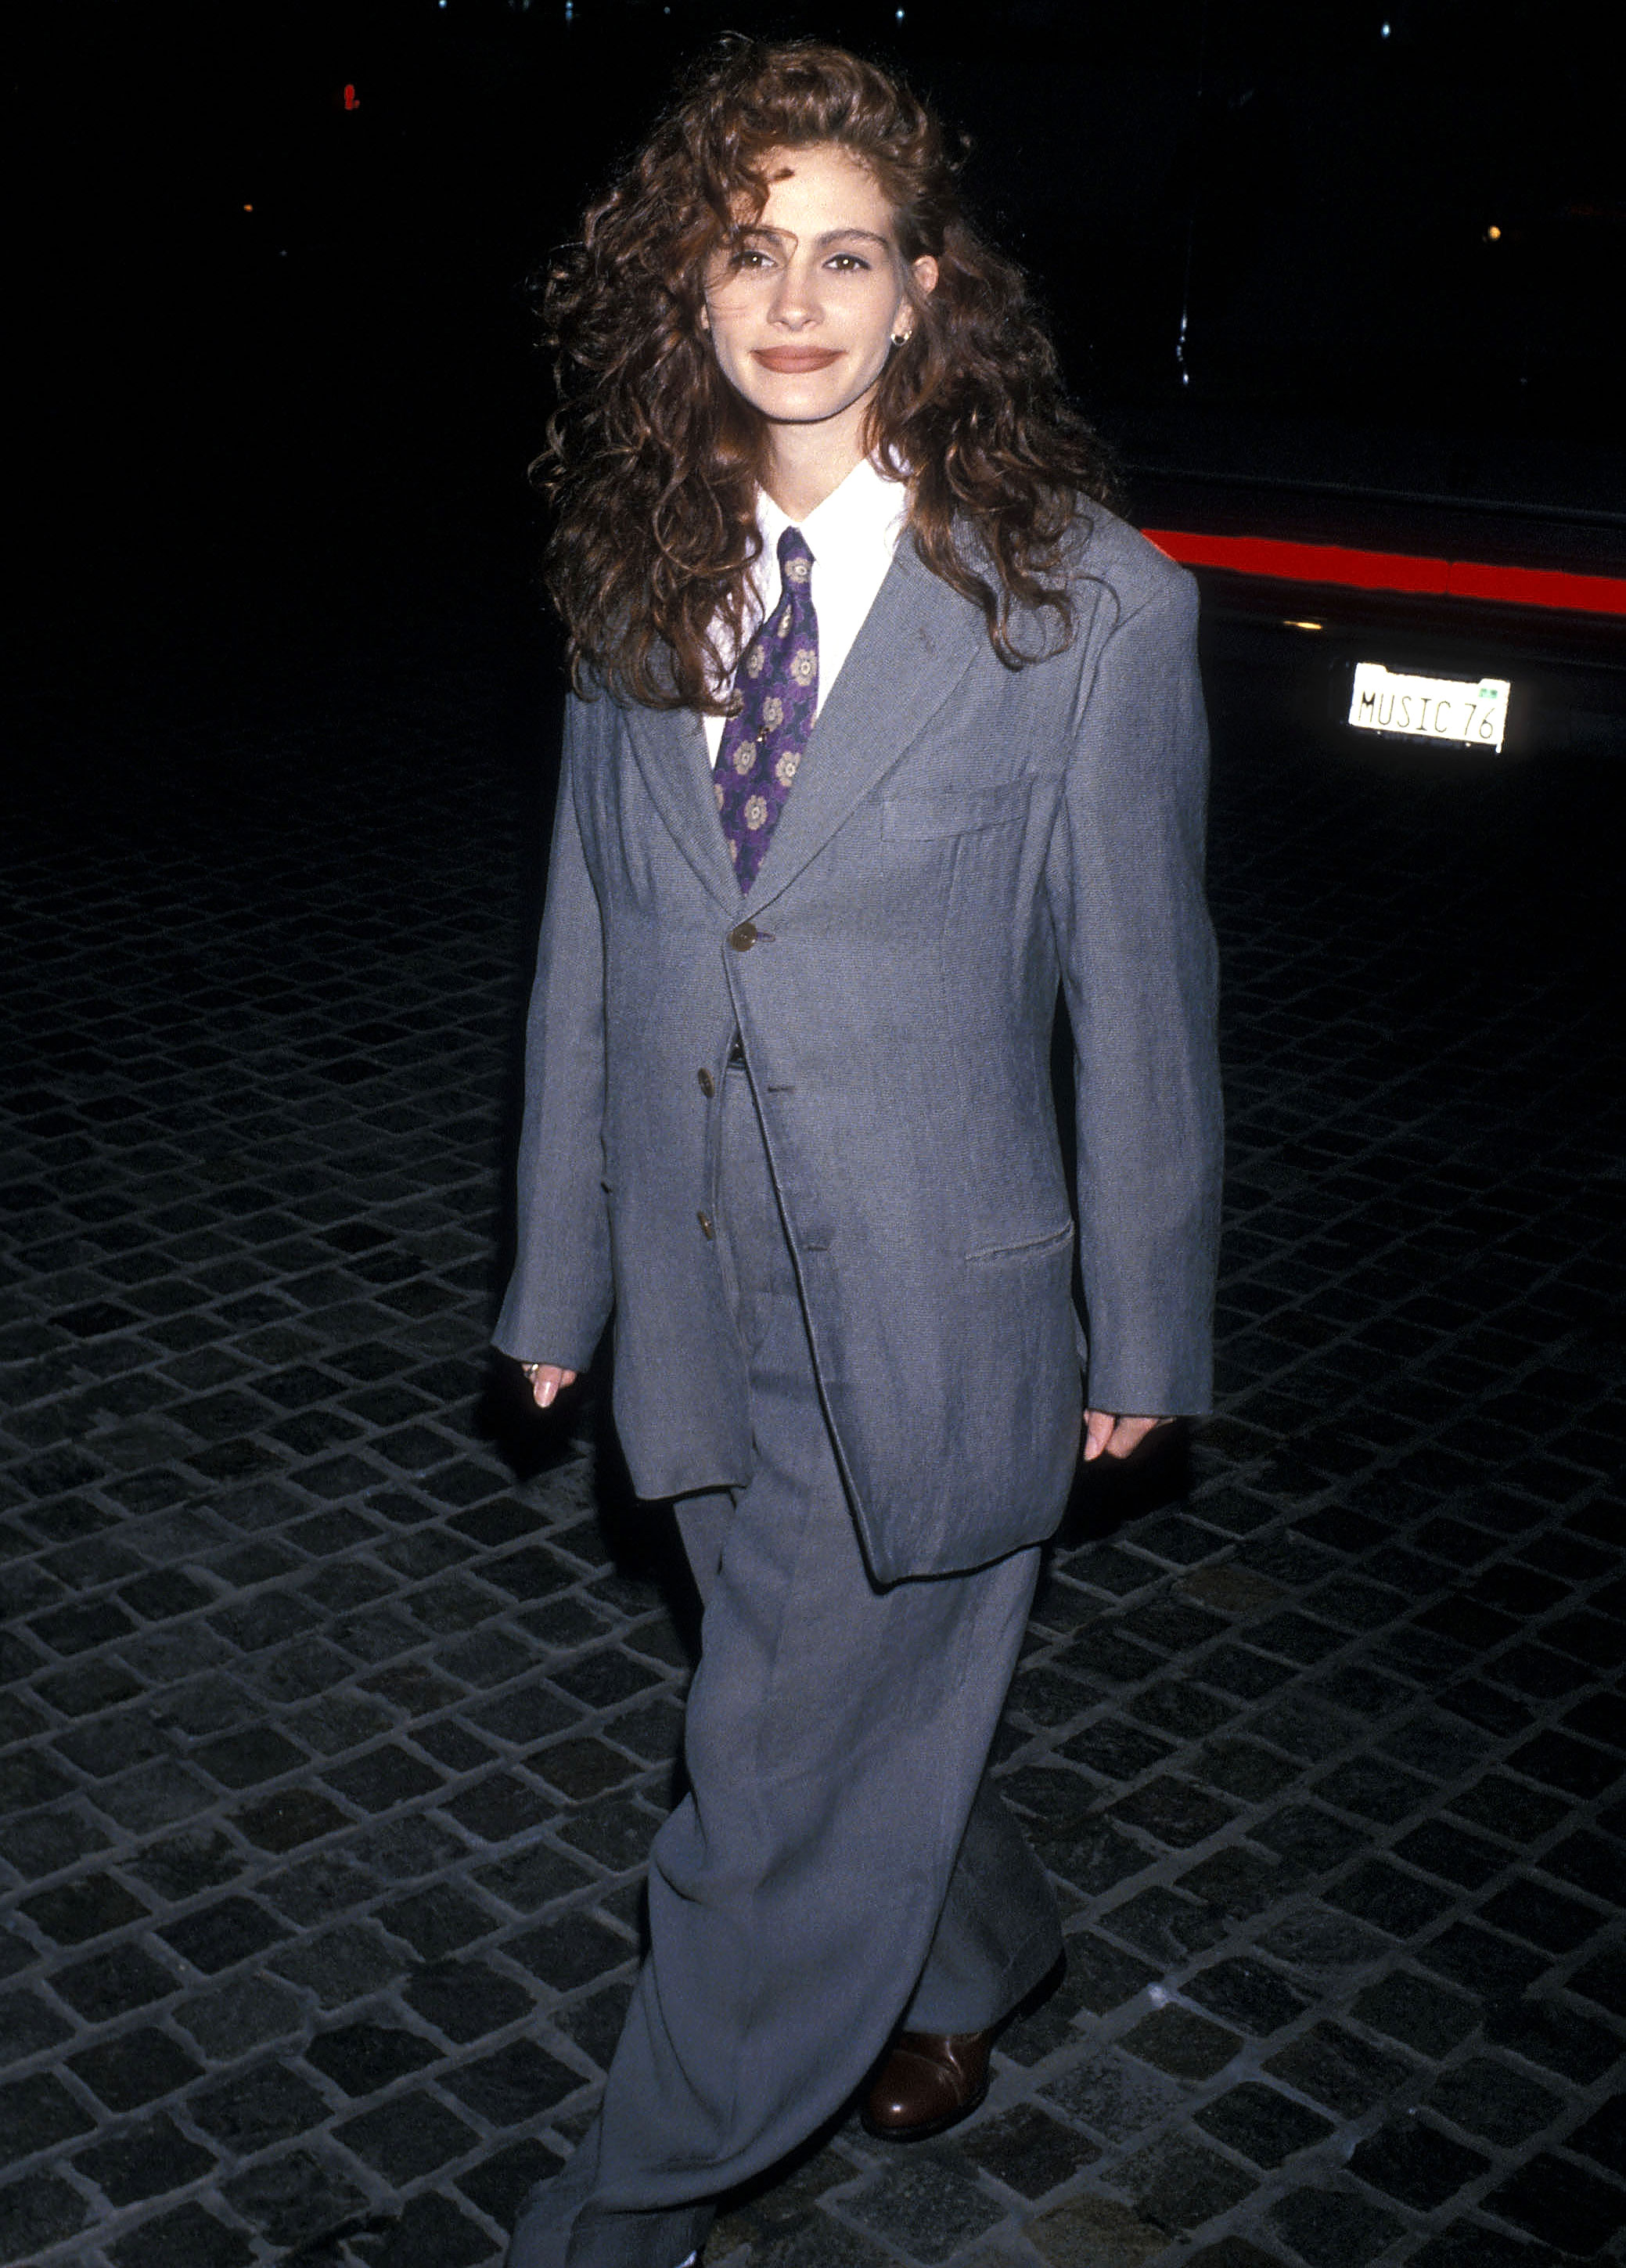 Julia-Roberts-8 - The best accessory for a slouchy, borrowed-from-the-boys Giorgio Armani suit and tie? Cascading curls, as she proved at the 1990 Golden Globes.